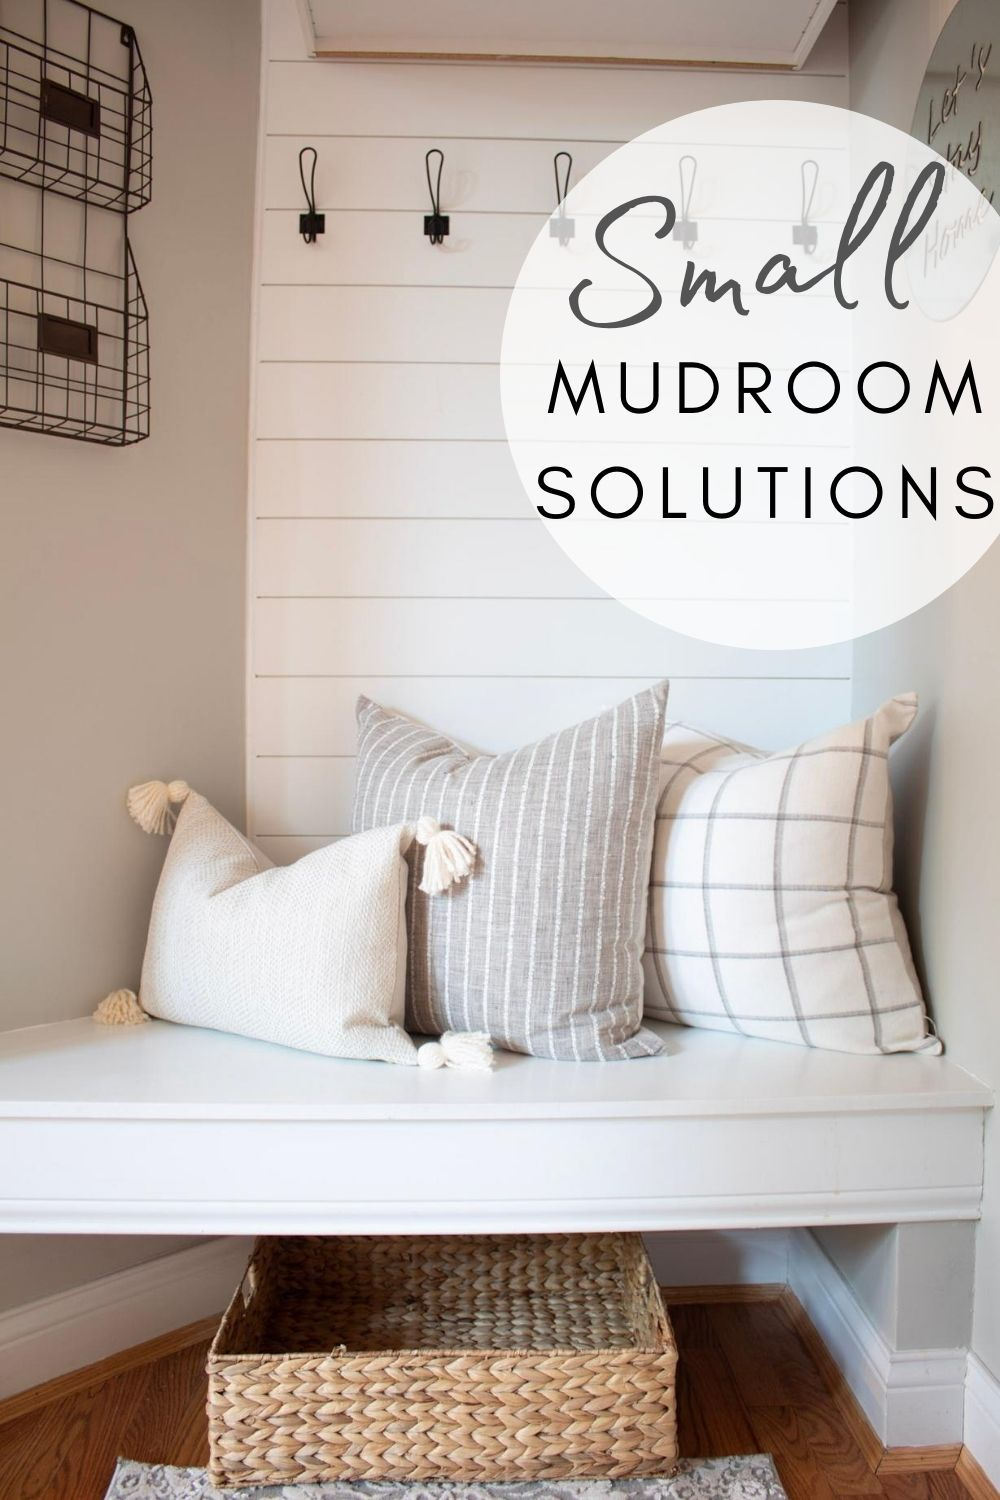 Photo of 5 Ingredients for a Fabulous Mudroom Makeover